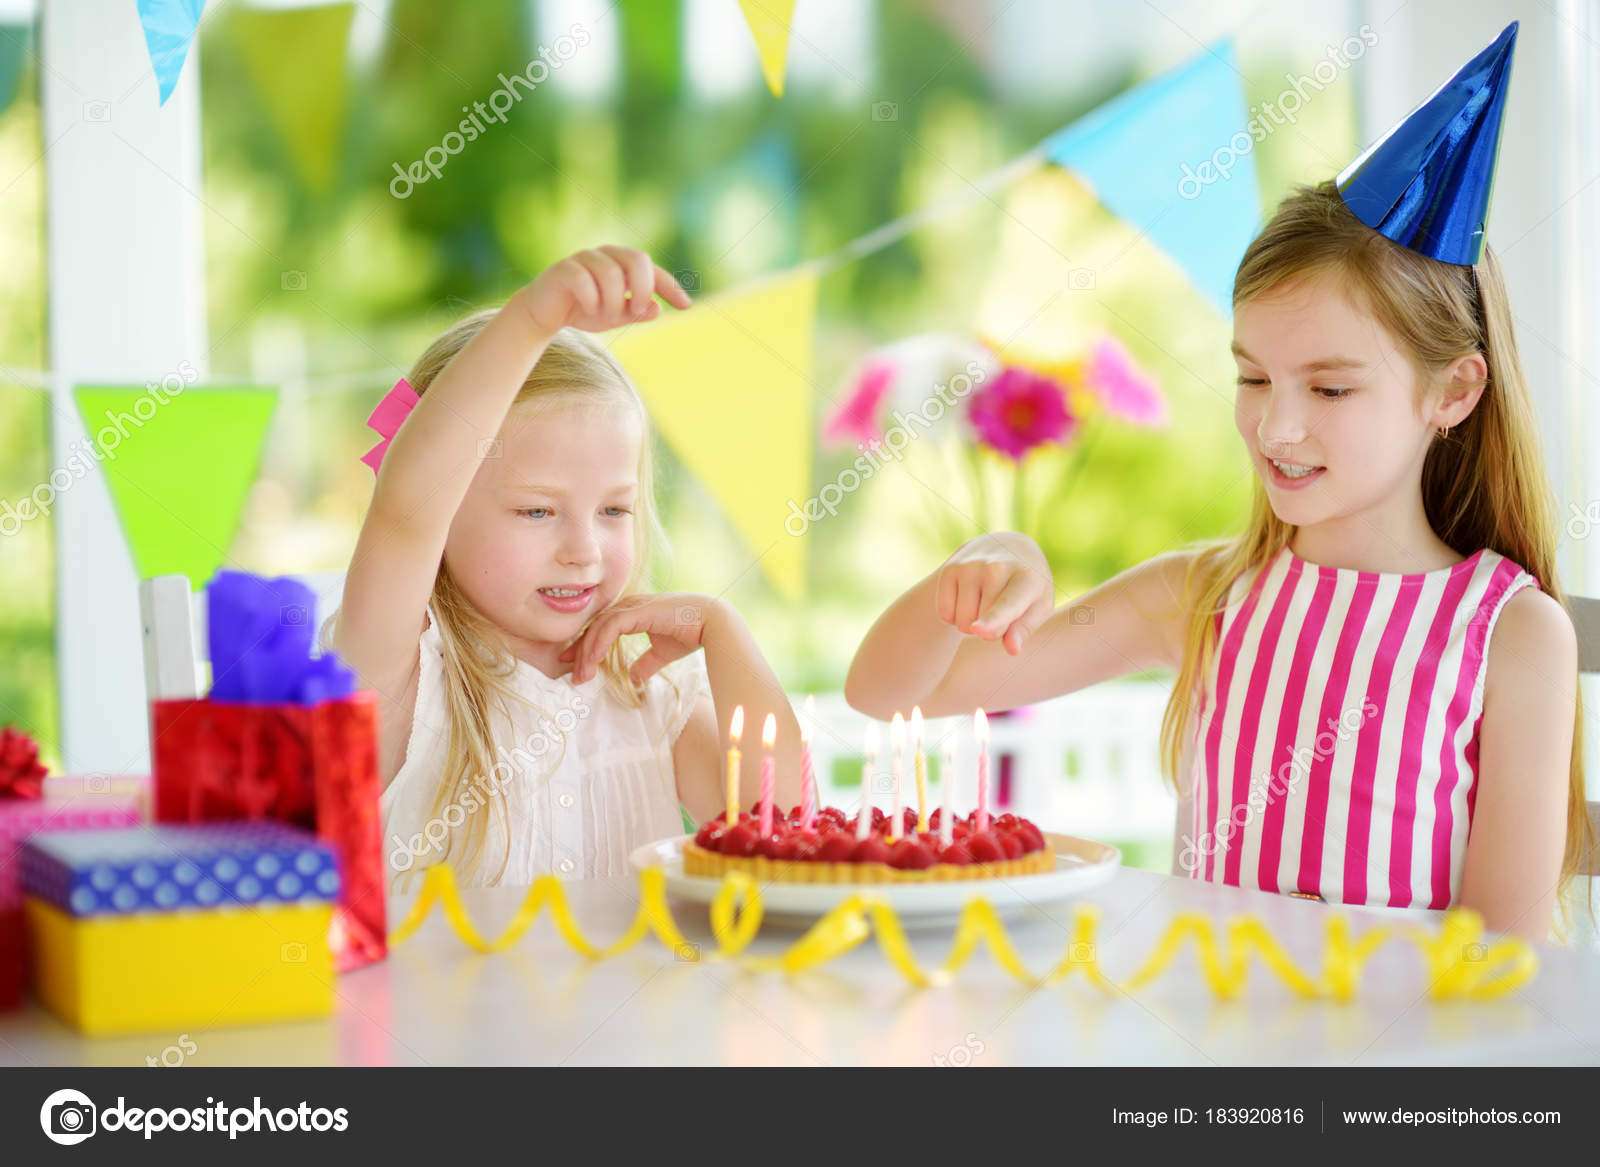 Adorable Girl Having Birthday Party Home Blowing Candles Birthday Cake Stock Photo C Mnstudio 183920816,How To Make Home Decoration